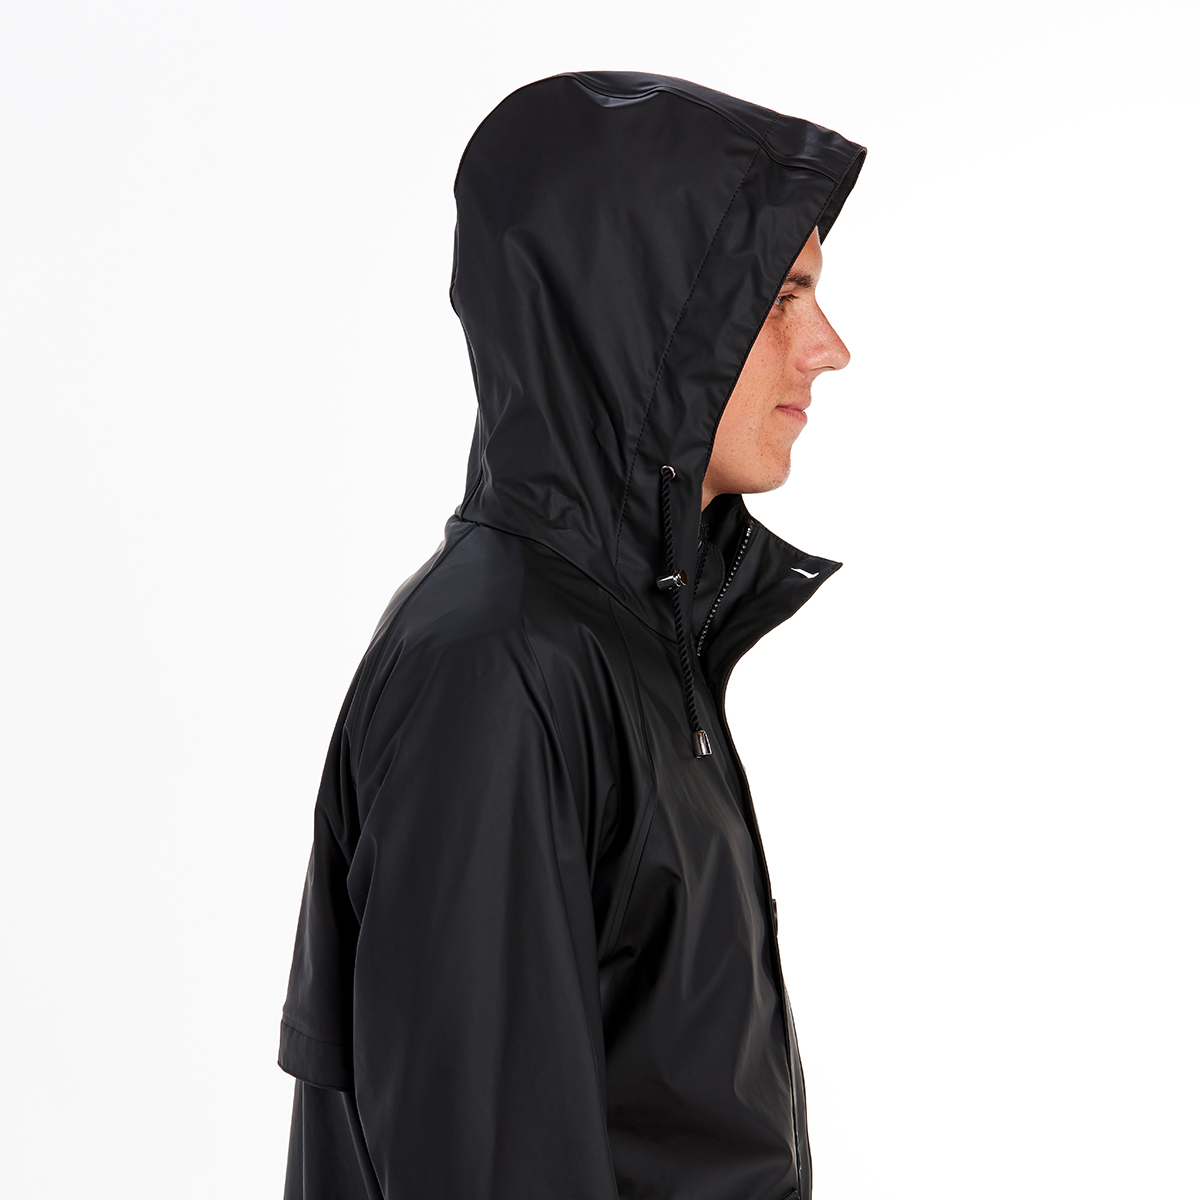 Man in profile wearing a navy blue parka with the hood extended, protecting his head from the weather.